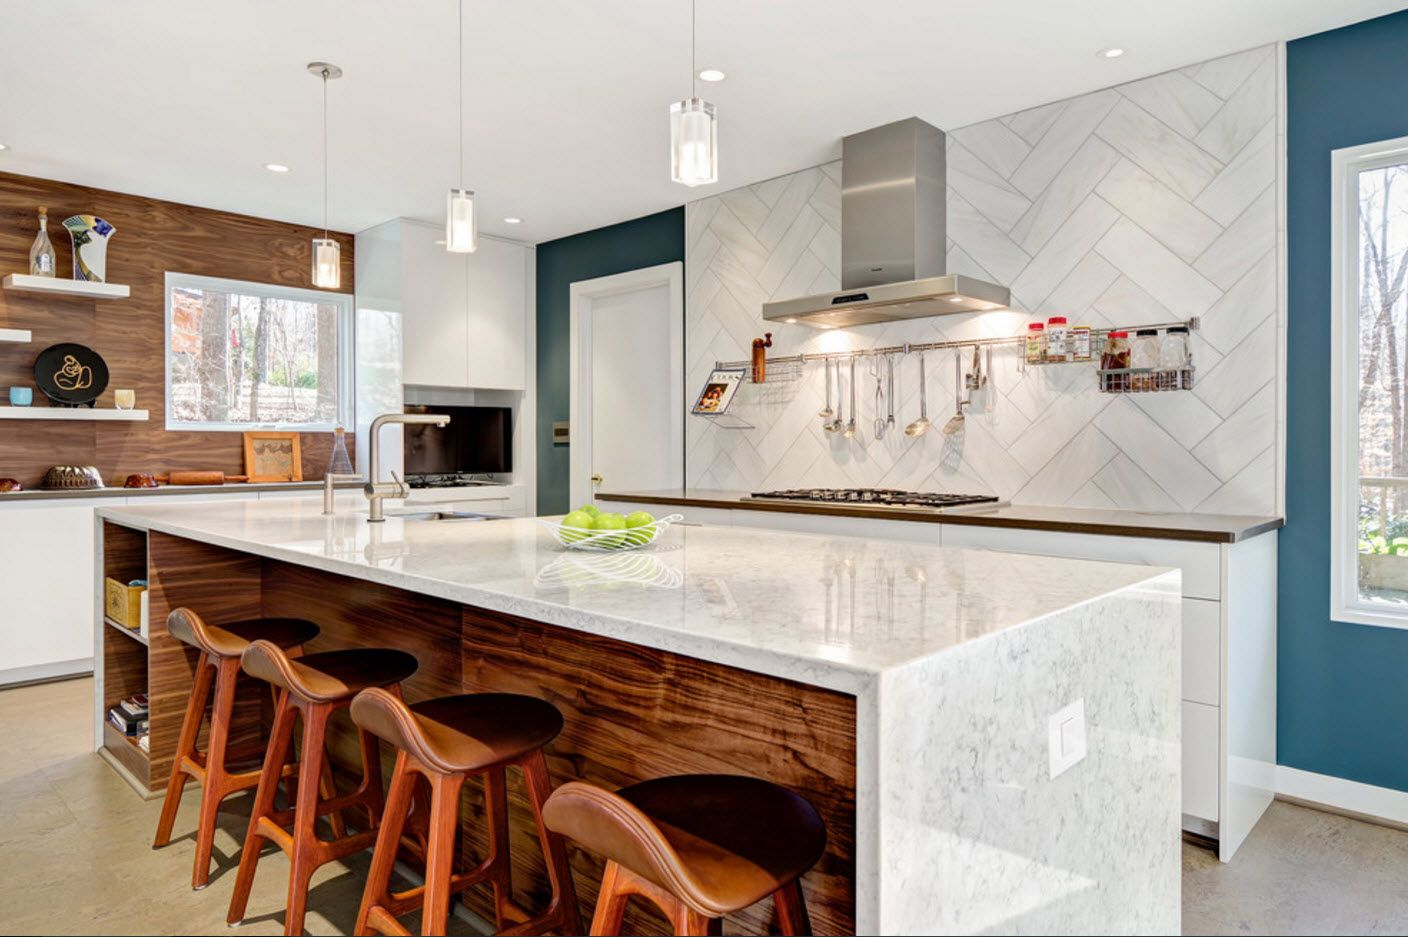 White glossy surface of the kitchen island and with wooden streaked sides